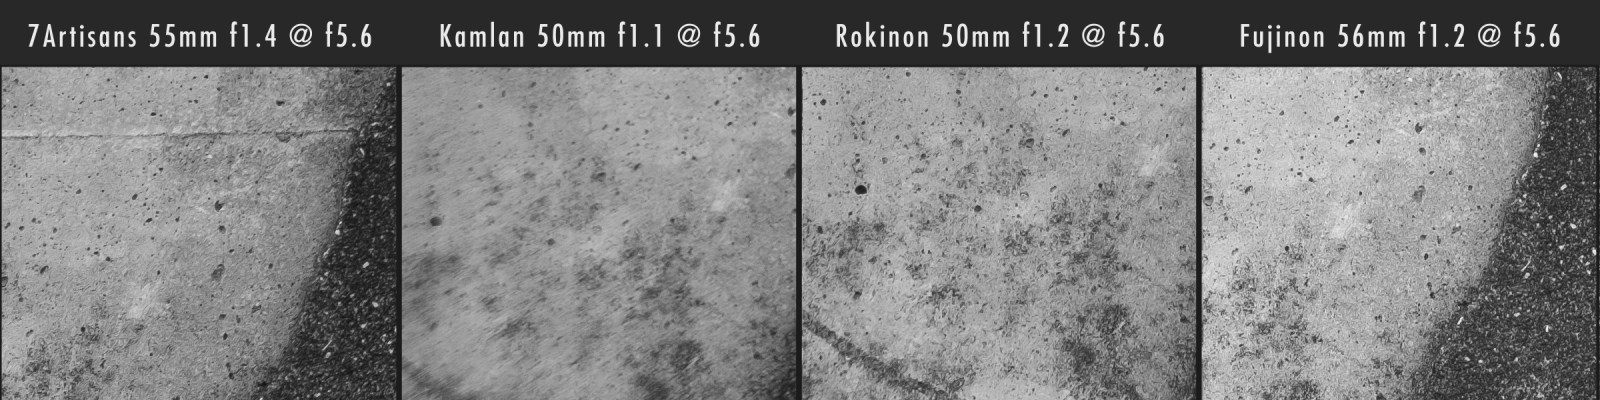 Kamlan 50mm f1.1 vs 7Artisans 55mm f1.4 vs Rokinon 50mm f1.2 Corner Sharpness @ f5.6